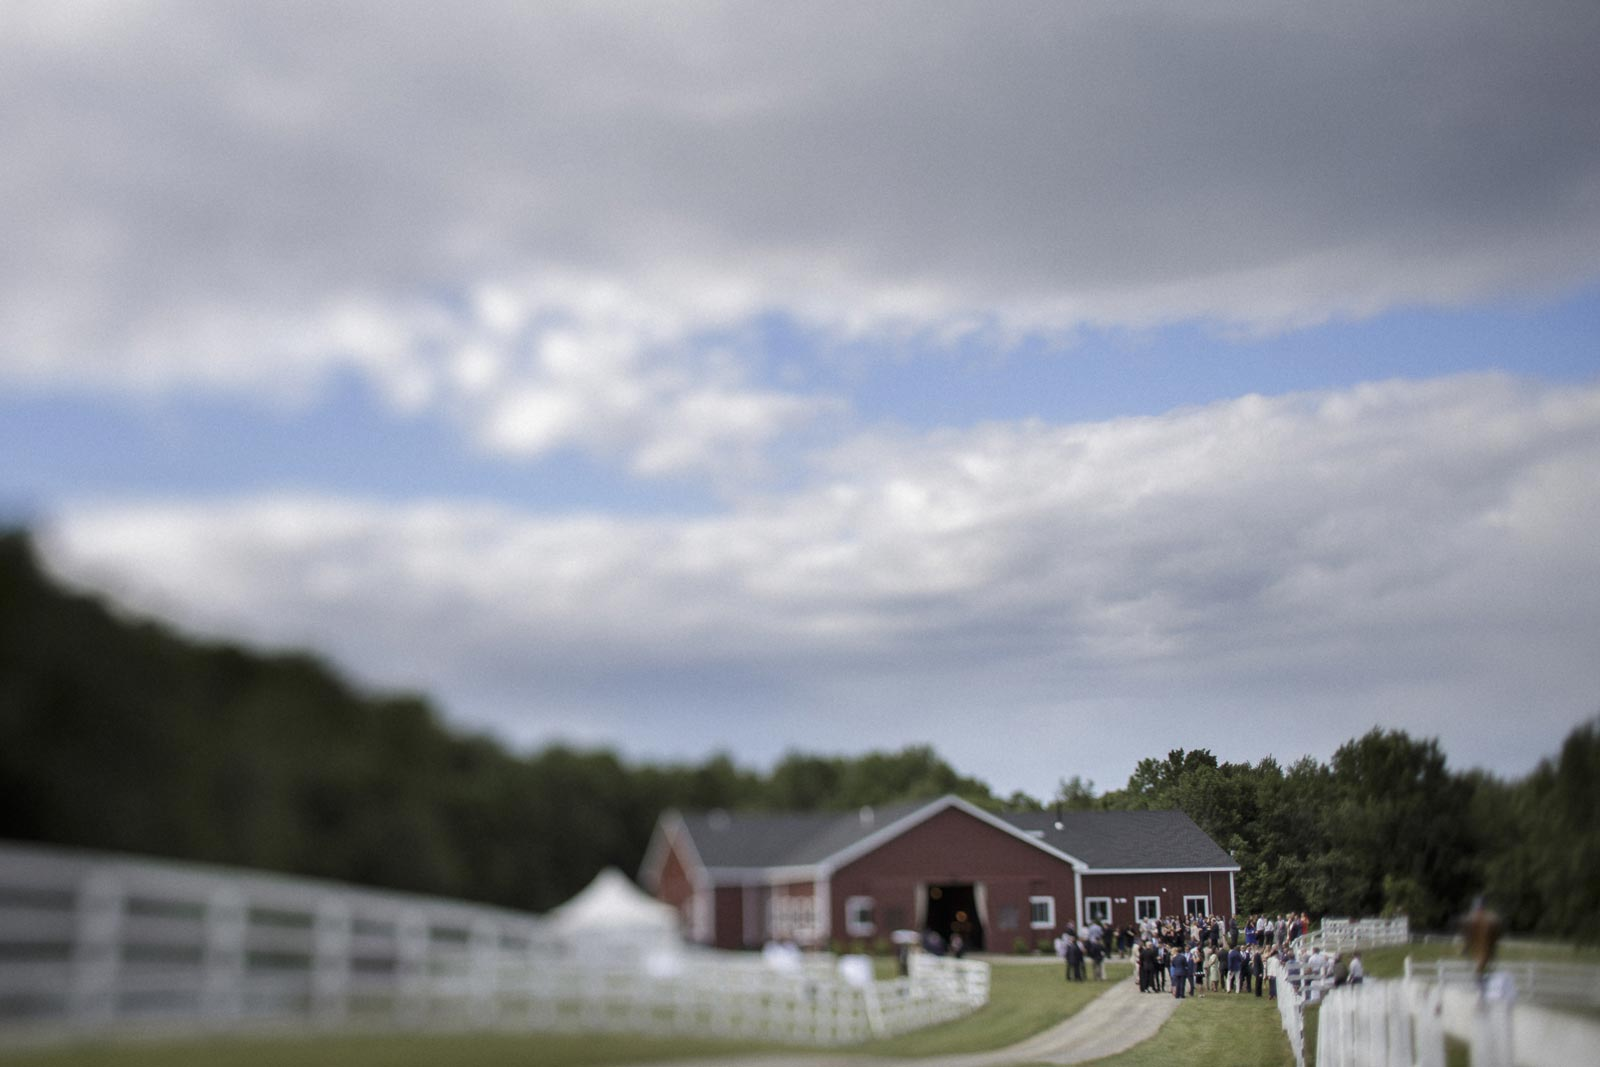 barn-at-liberty-farms-wedding-hudson-valley-alekseyk-photography-40.jpg